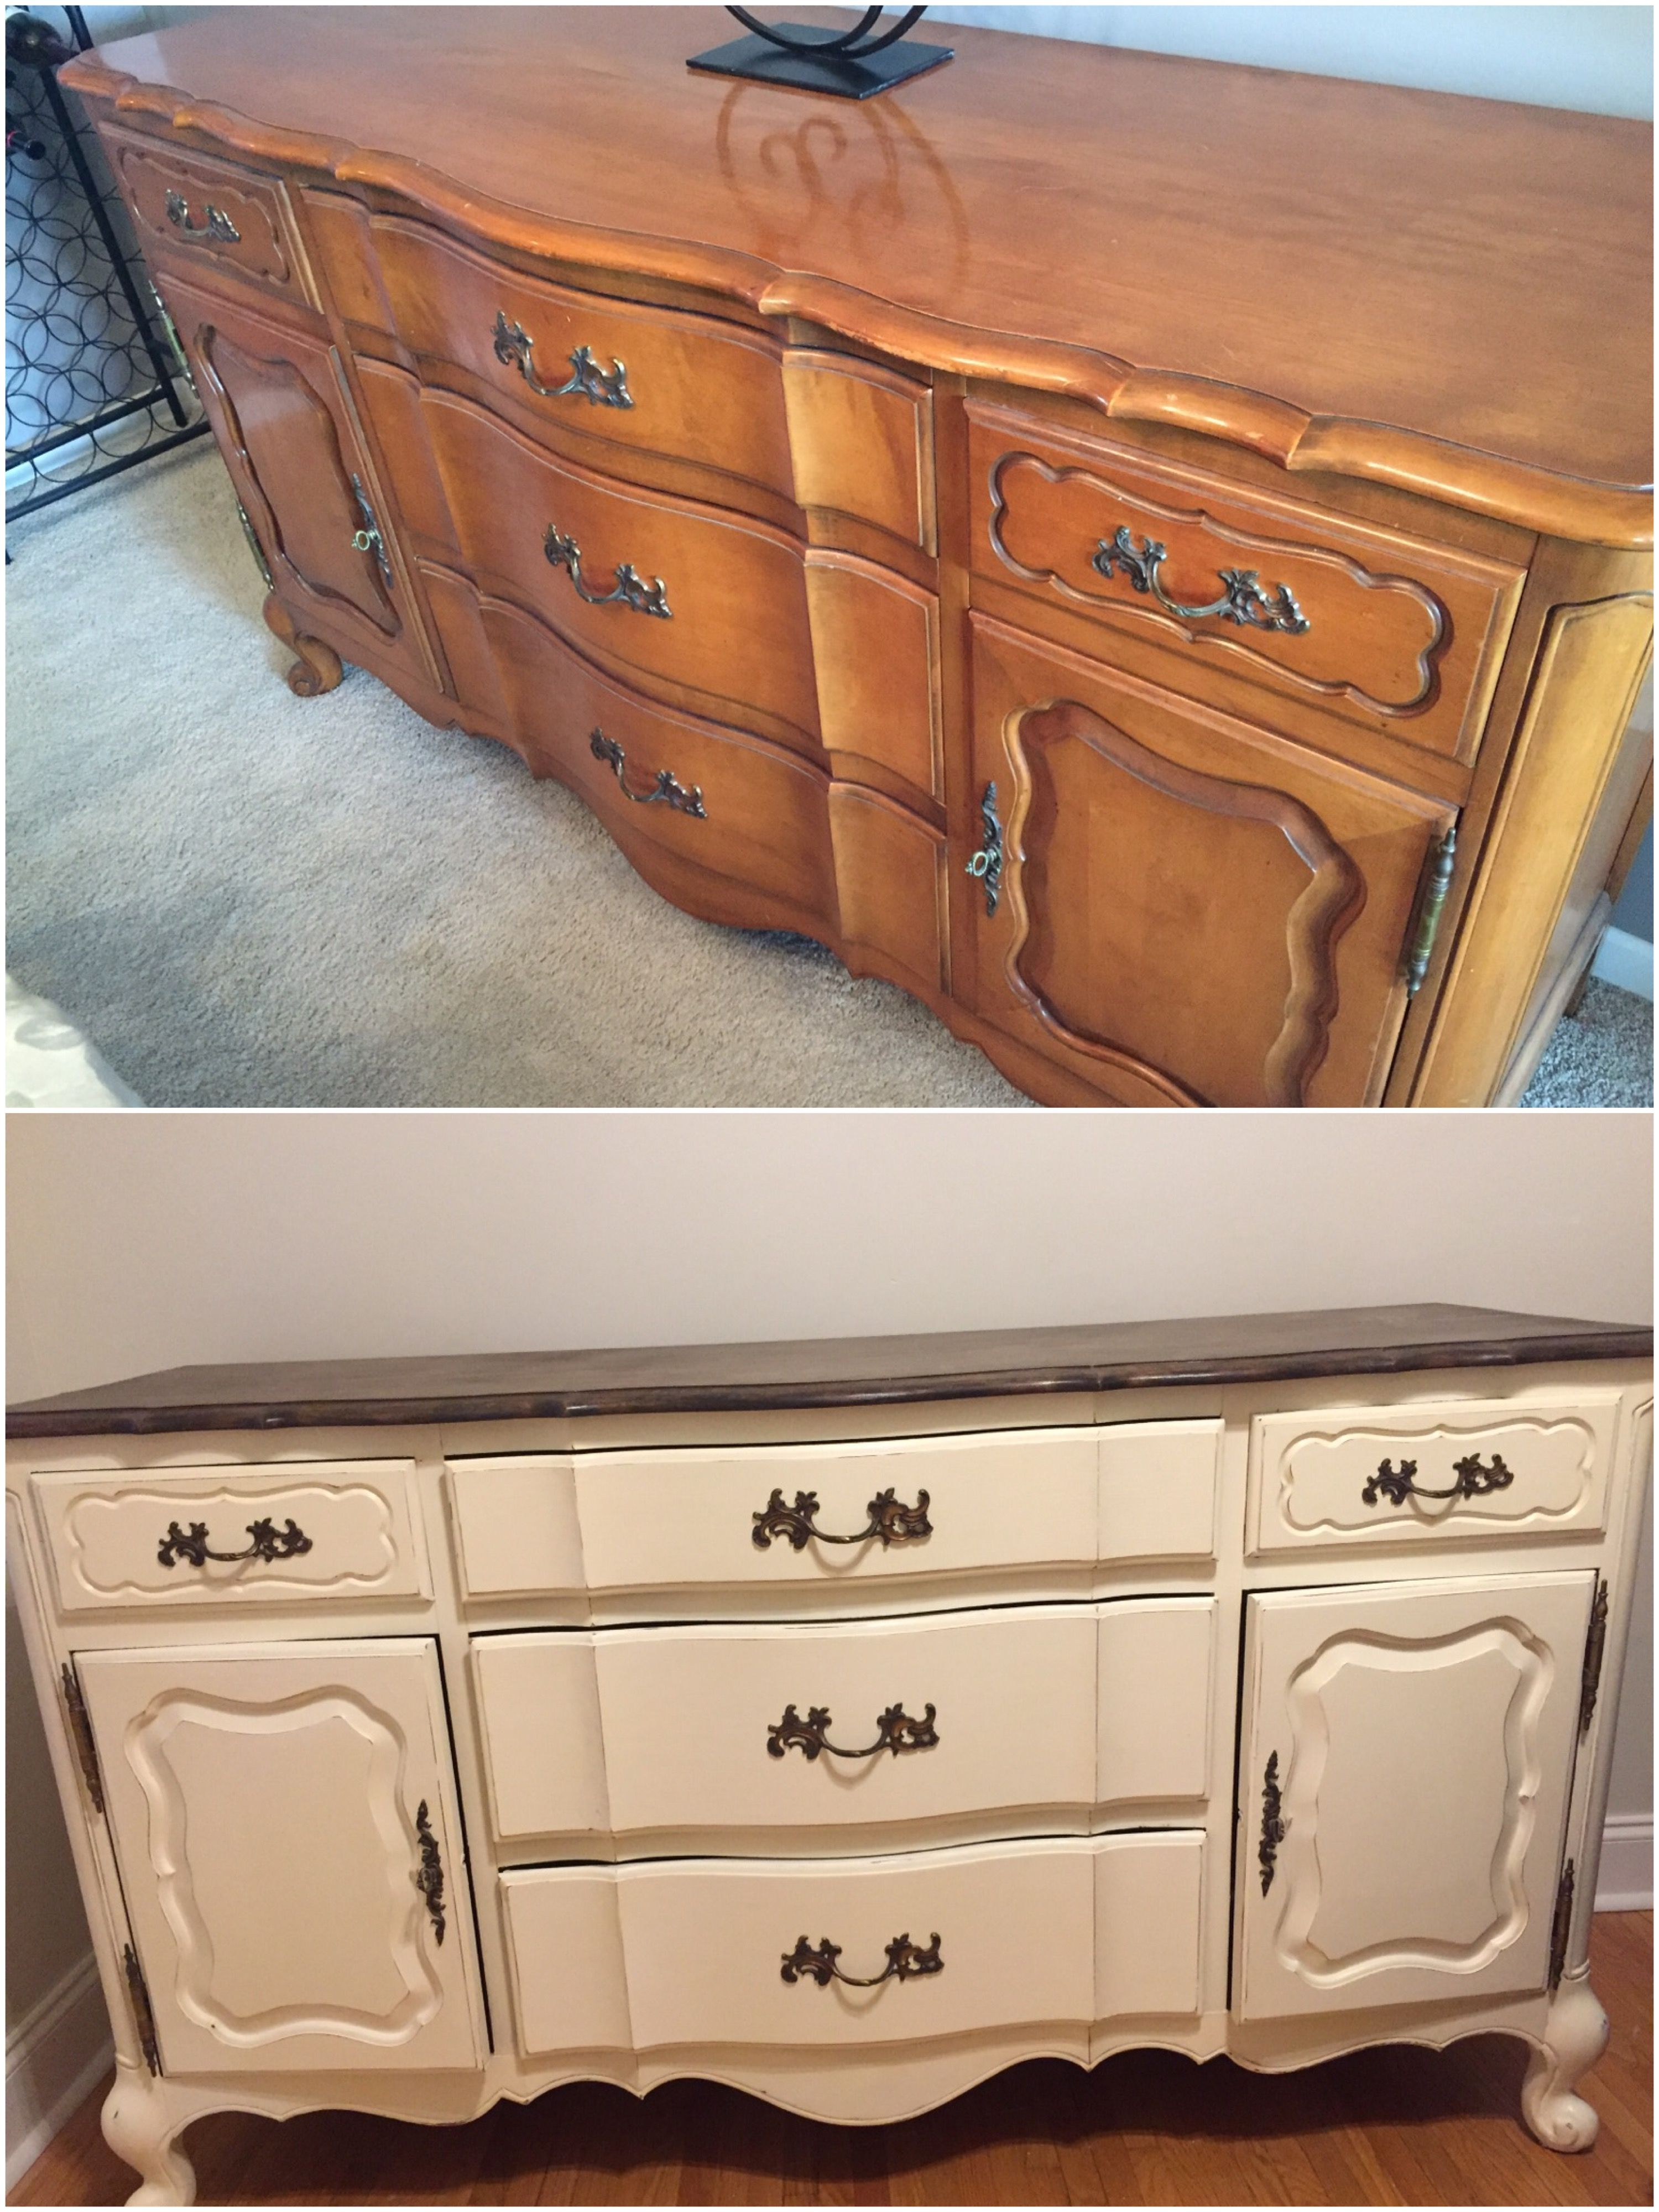 I Gave My Dining Room Buffet Piece To A Friend Turn Into Dresser For